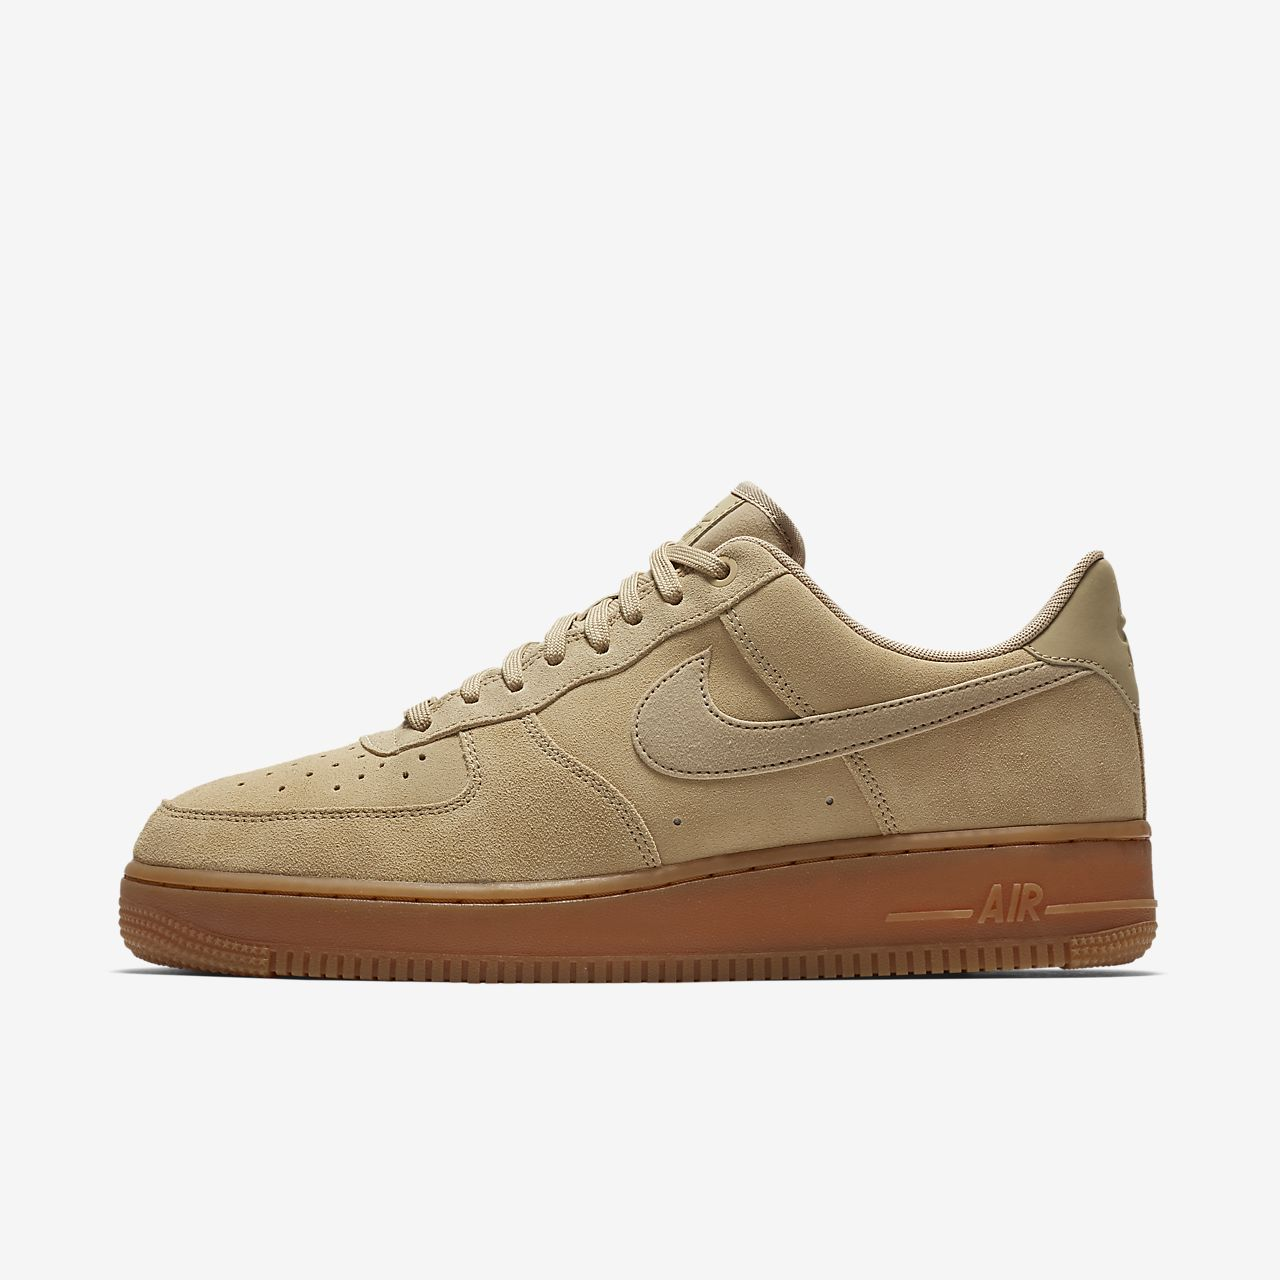 nike air force 1 07 lv8 suede mushroom boots